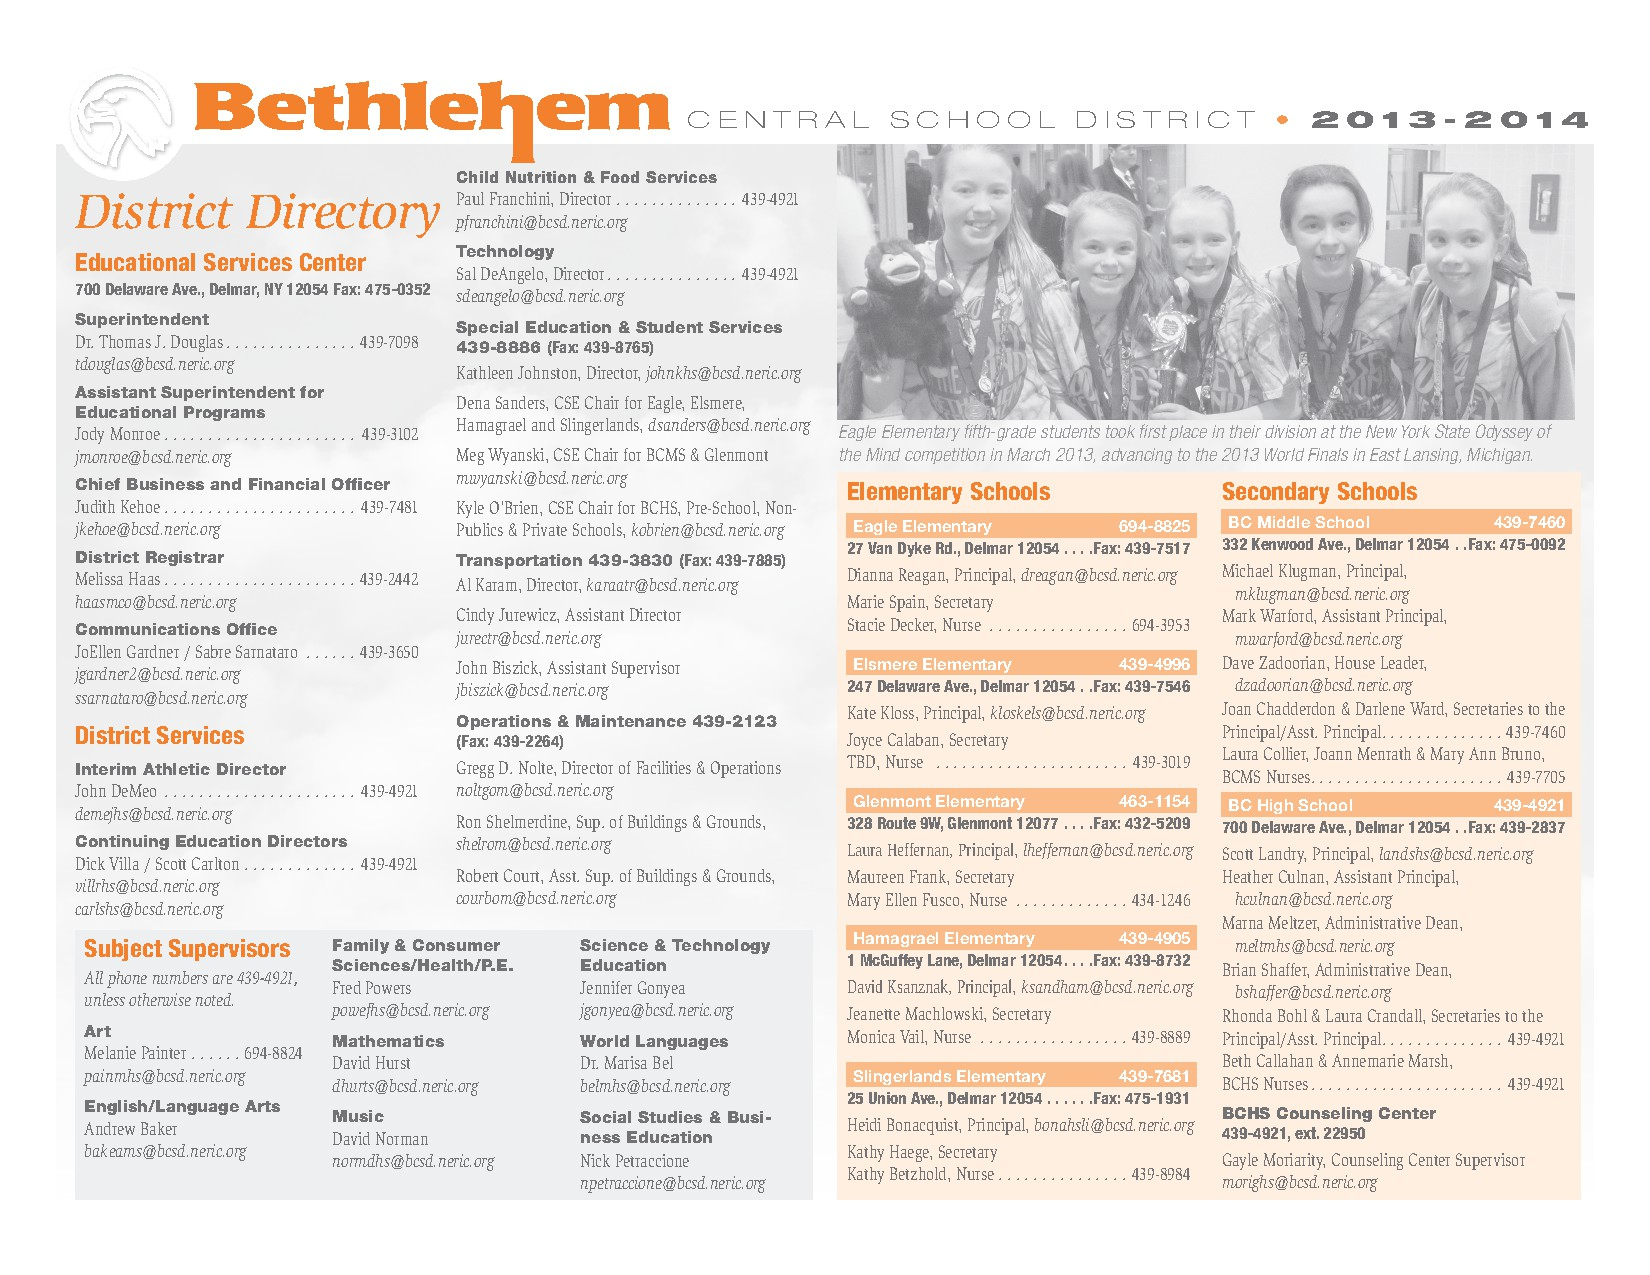 District Google Calendar – Bethlehem Central School District – page 15